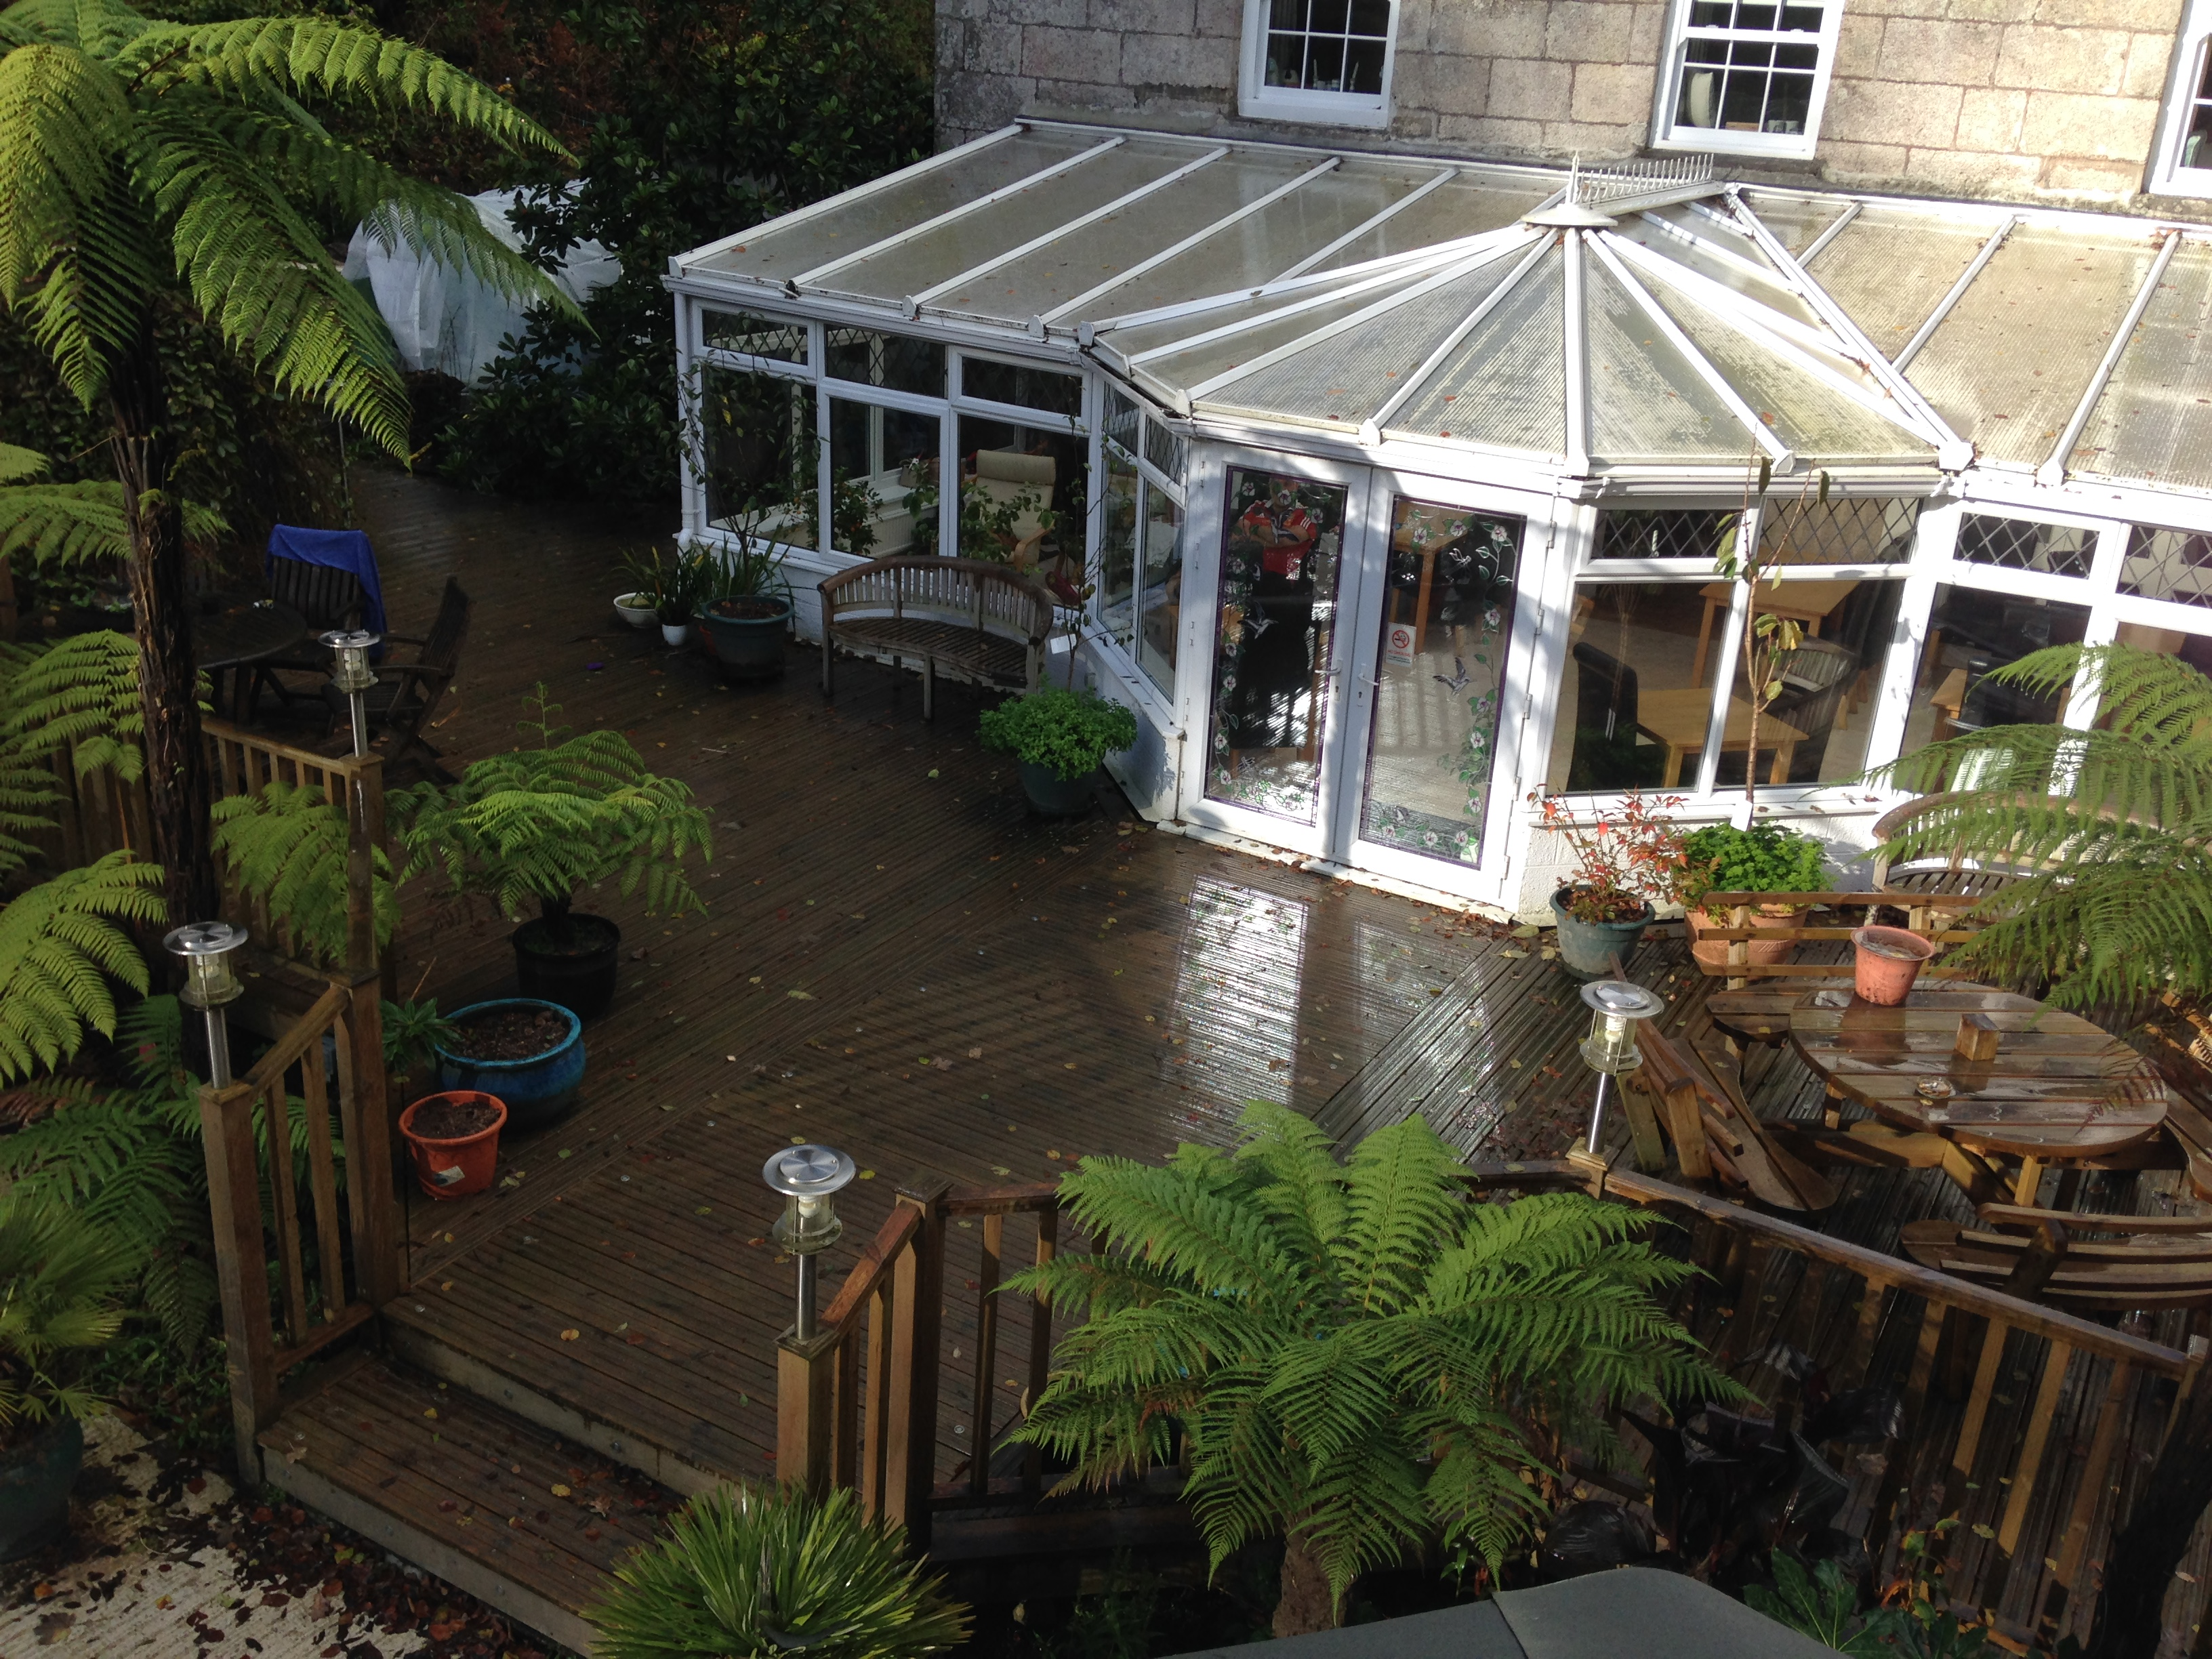 The Waterwheel Inn Conservatory